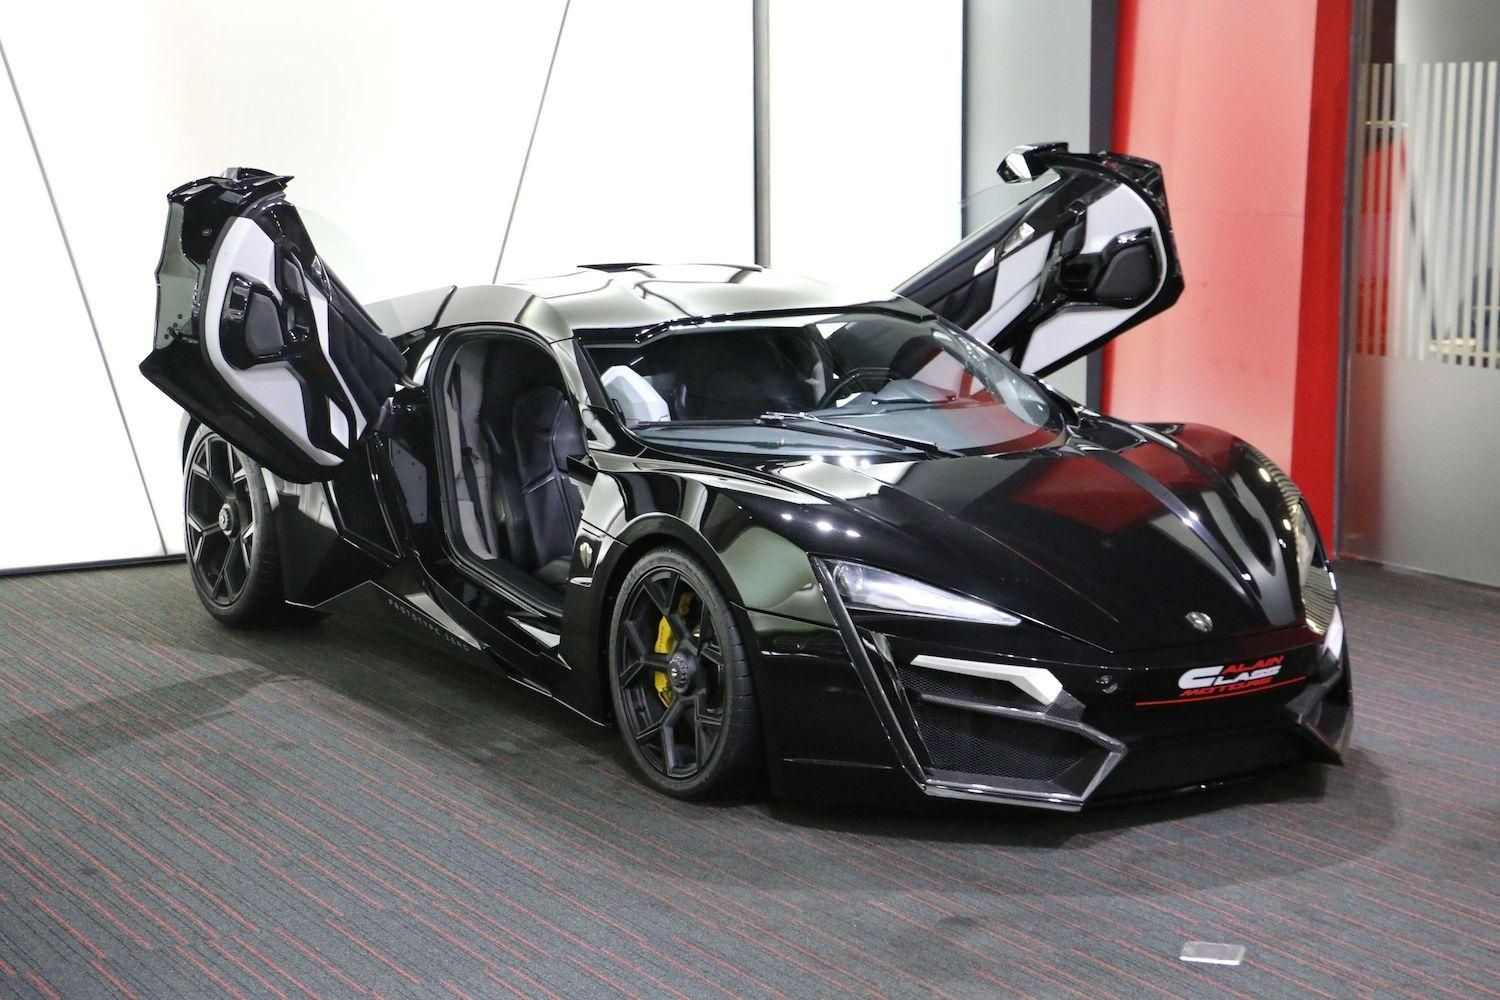 3 4 Million Dollar Lykan Hypersport Is For Sale In Dubai Digital Trends Lykan Hypersport Most Expensive Luxury Cars Super Cars